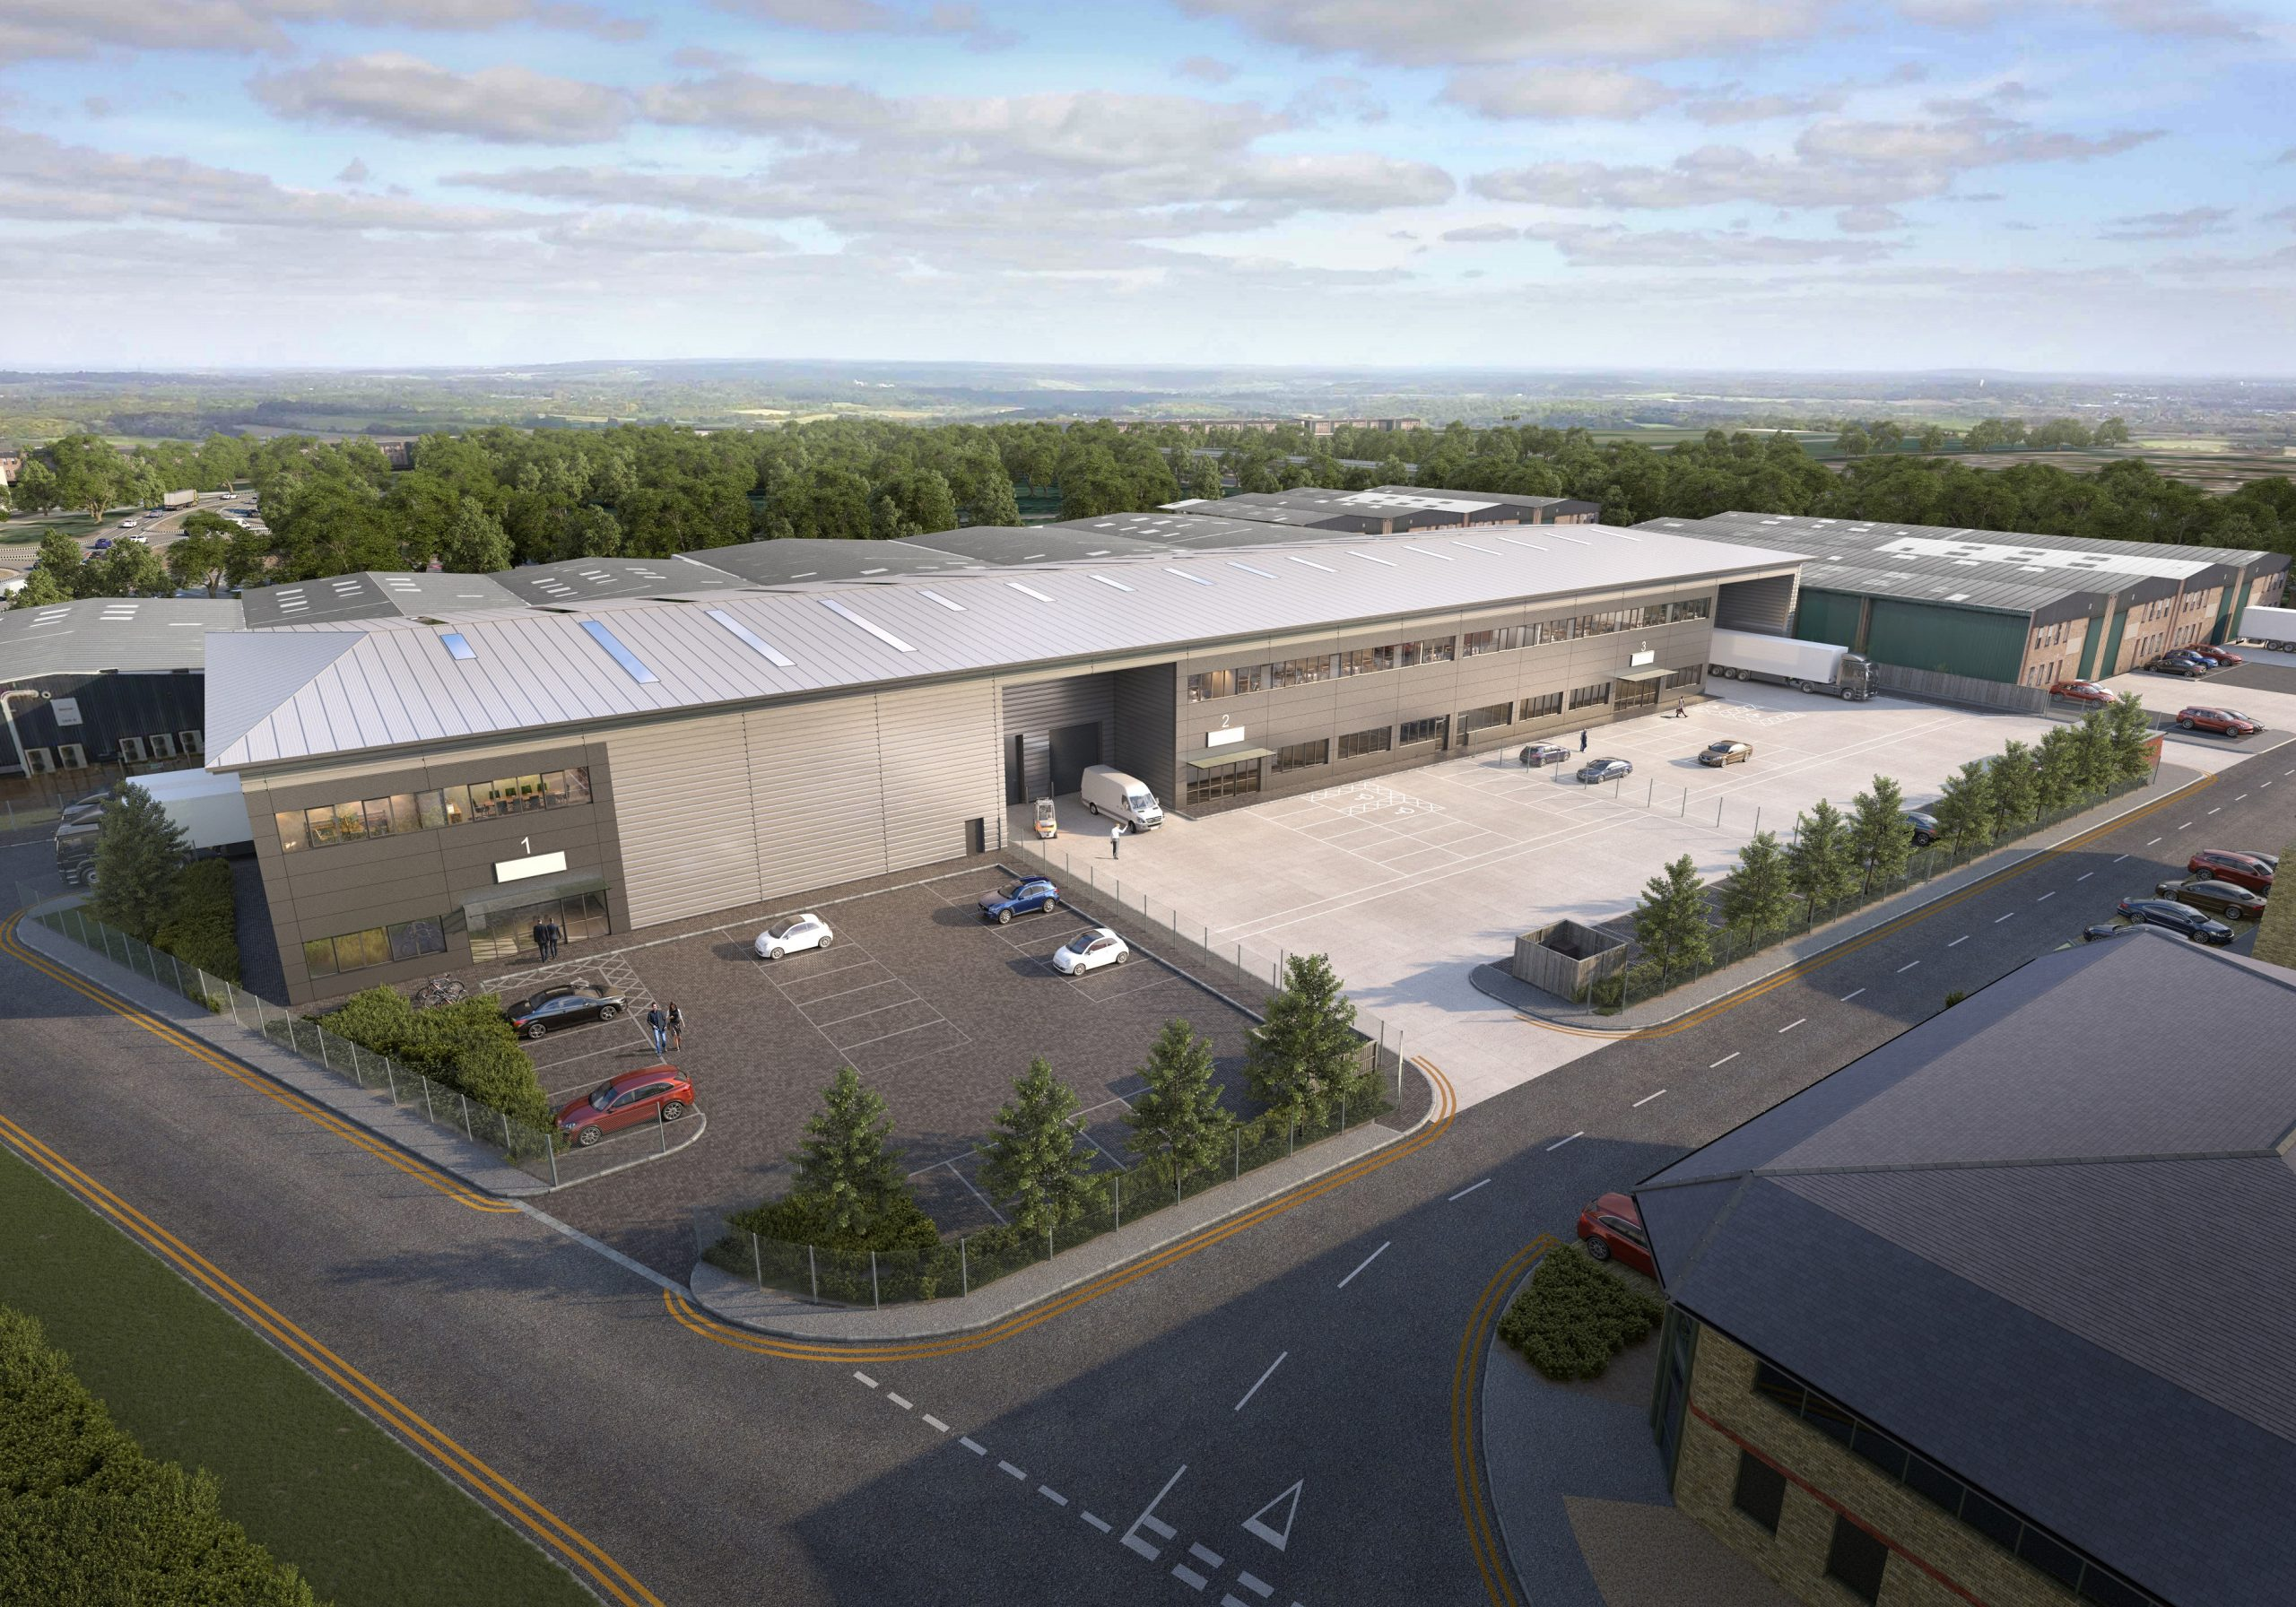 Orchard Street Secures Planning for Carbon Neutral South East Industrial Distribution Hub